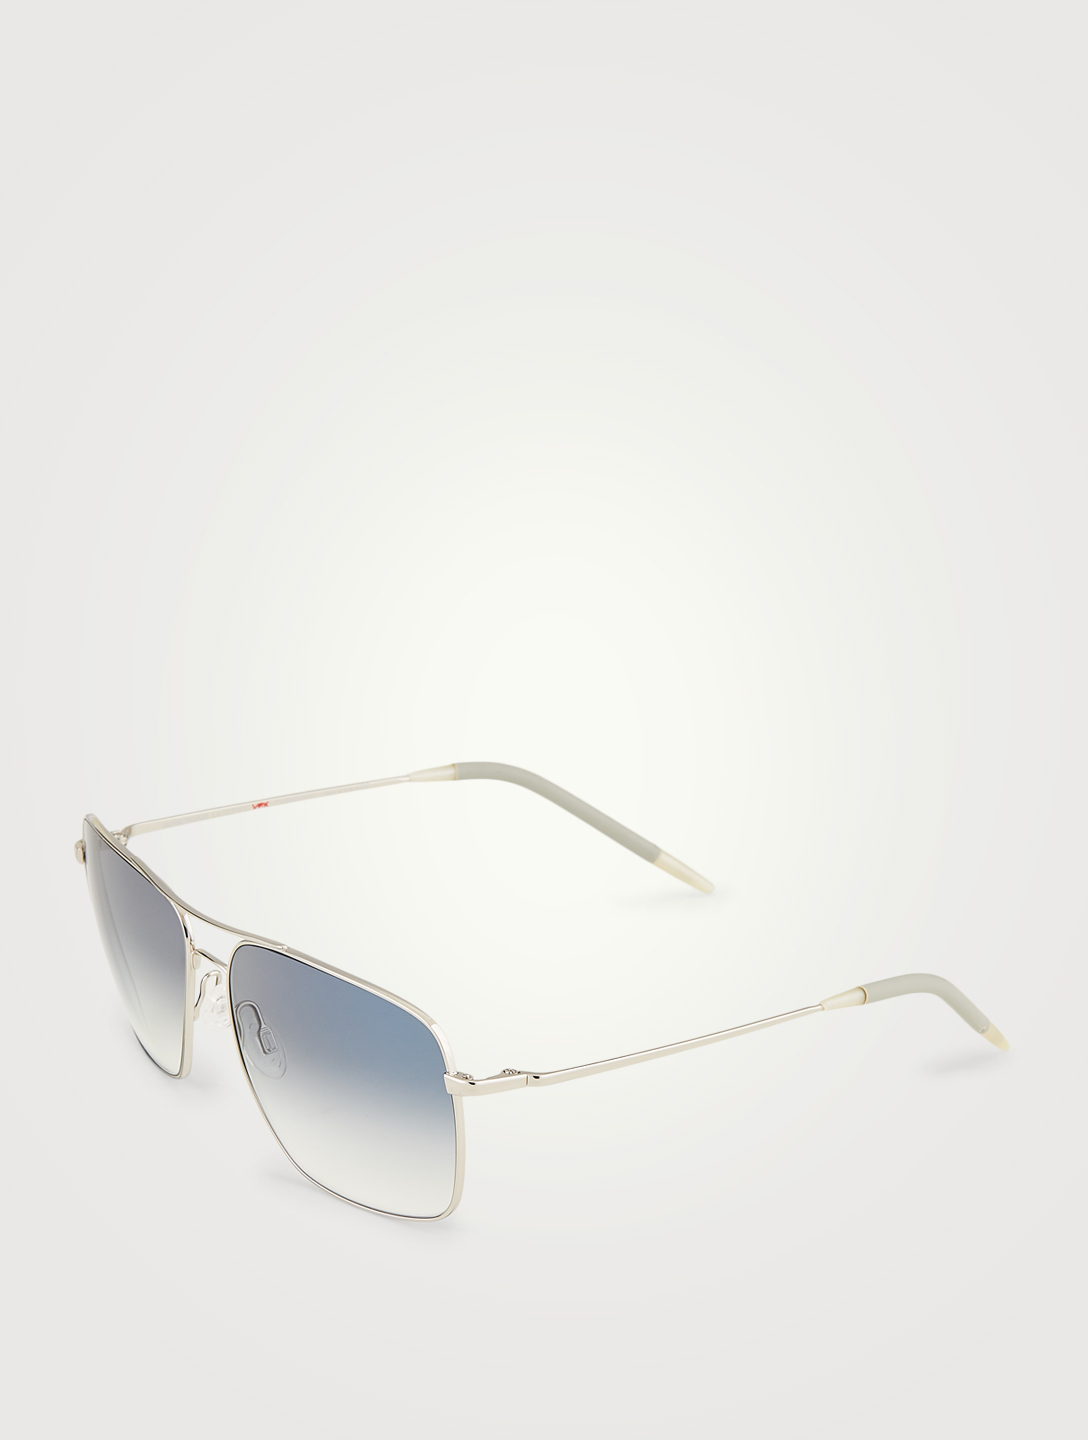 OLIVER PEOPLES Clifton Square Aviator Sunglasses Men's Metallic